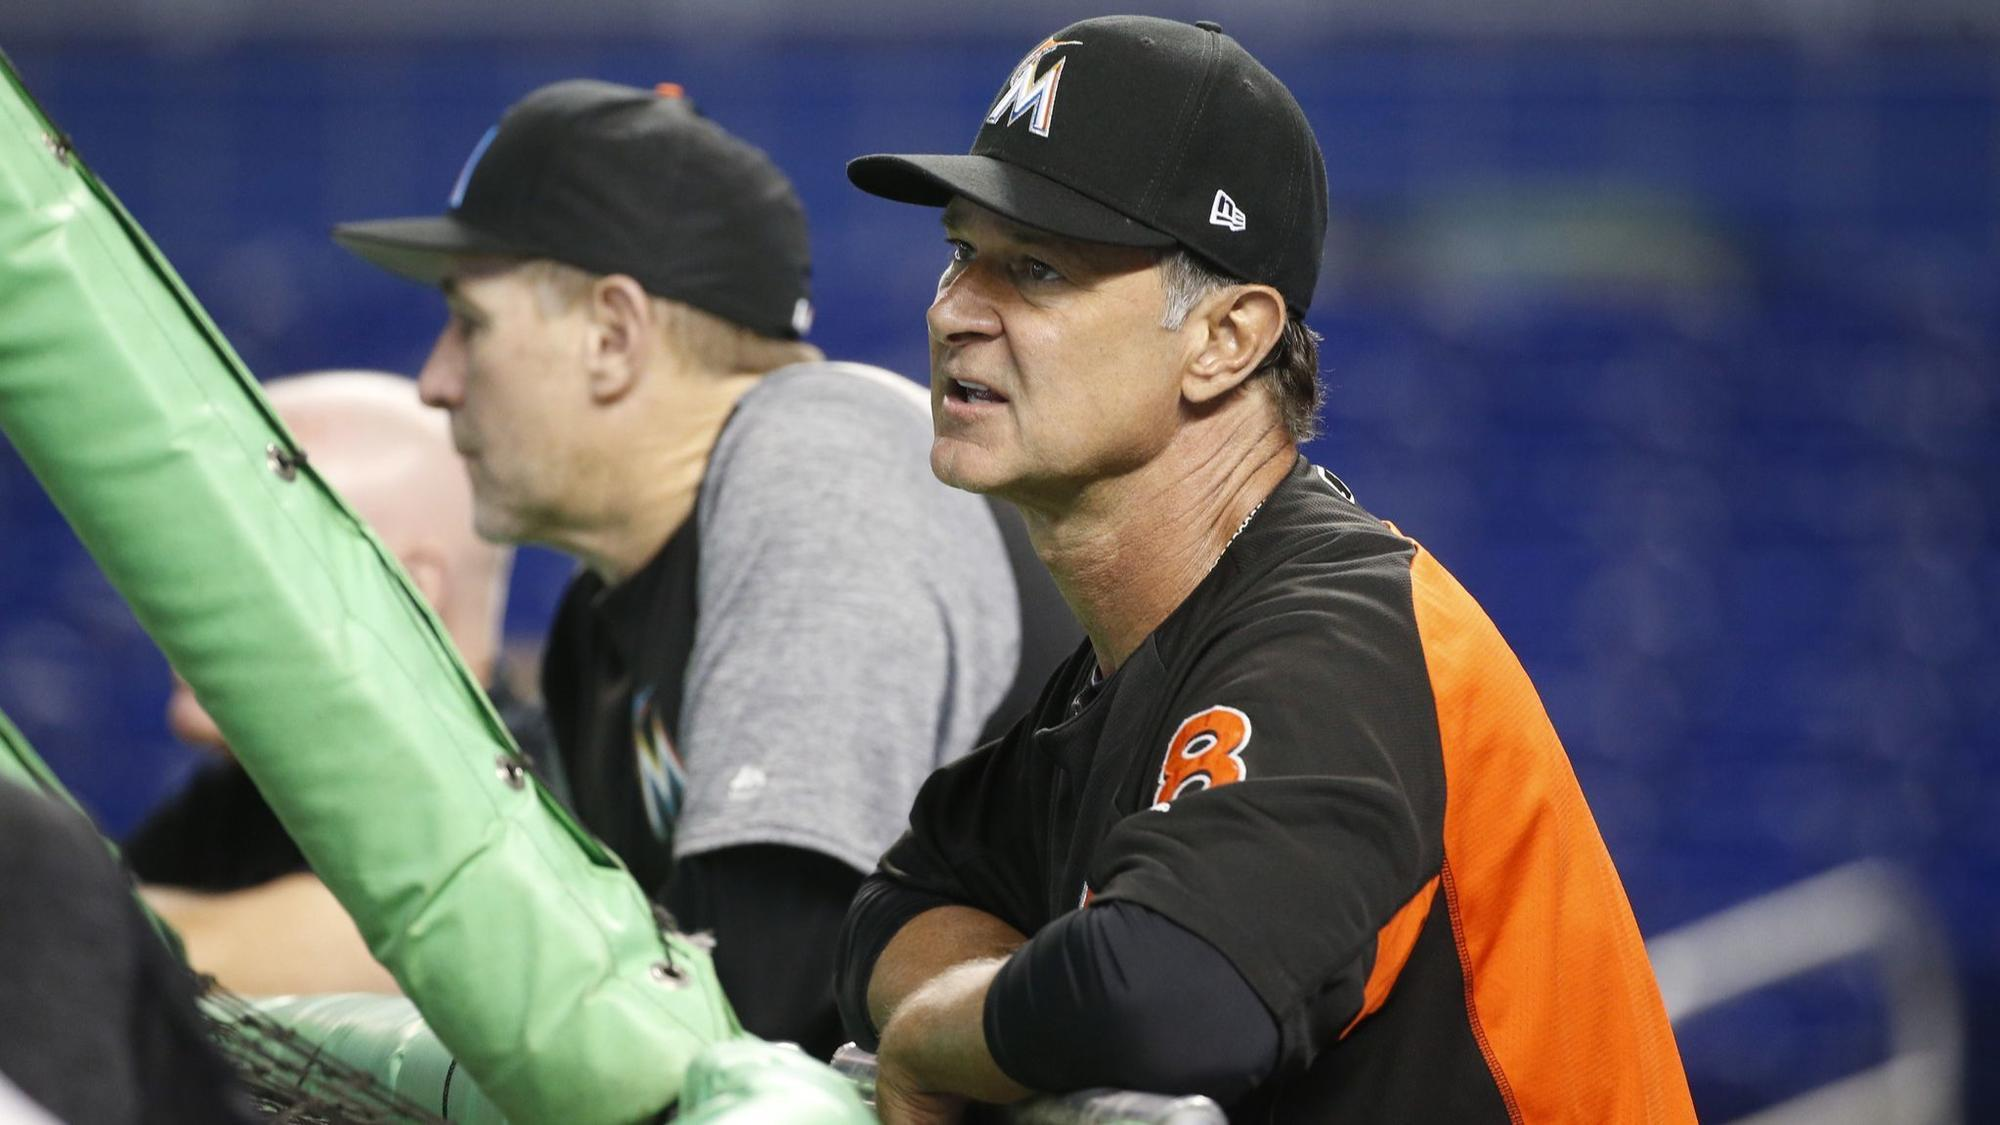 Fl-sp-marlins-don-mattingly-manager-20181210